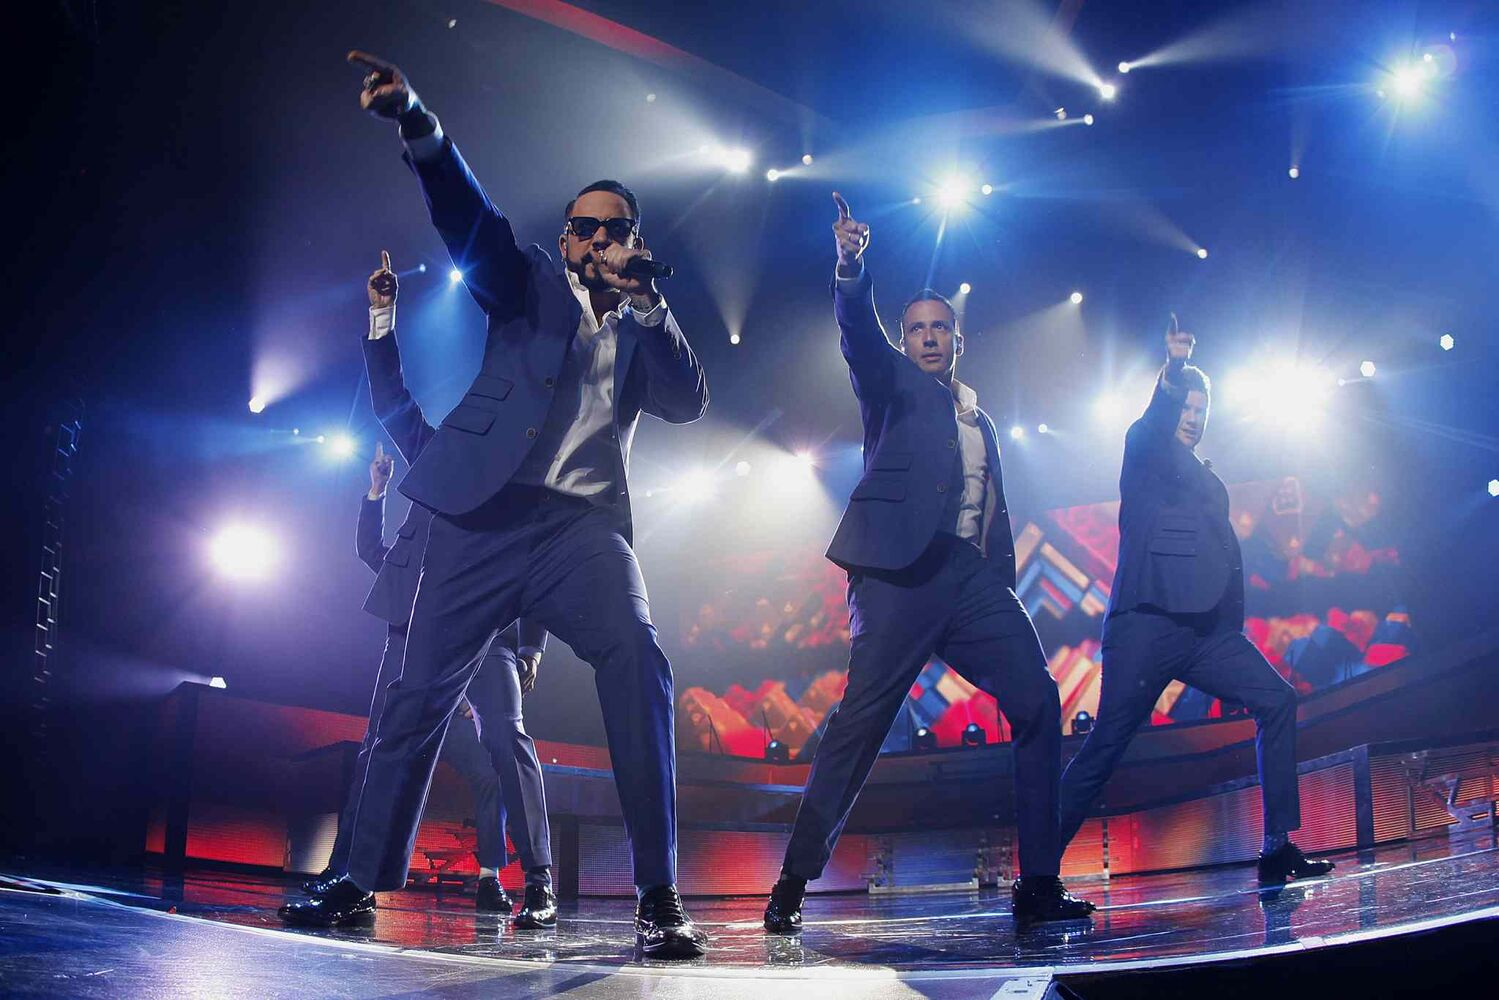 The Backstreet Boys perform at the MTS Centre Sunday night. (John Woods / Winnipeg Free Press)